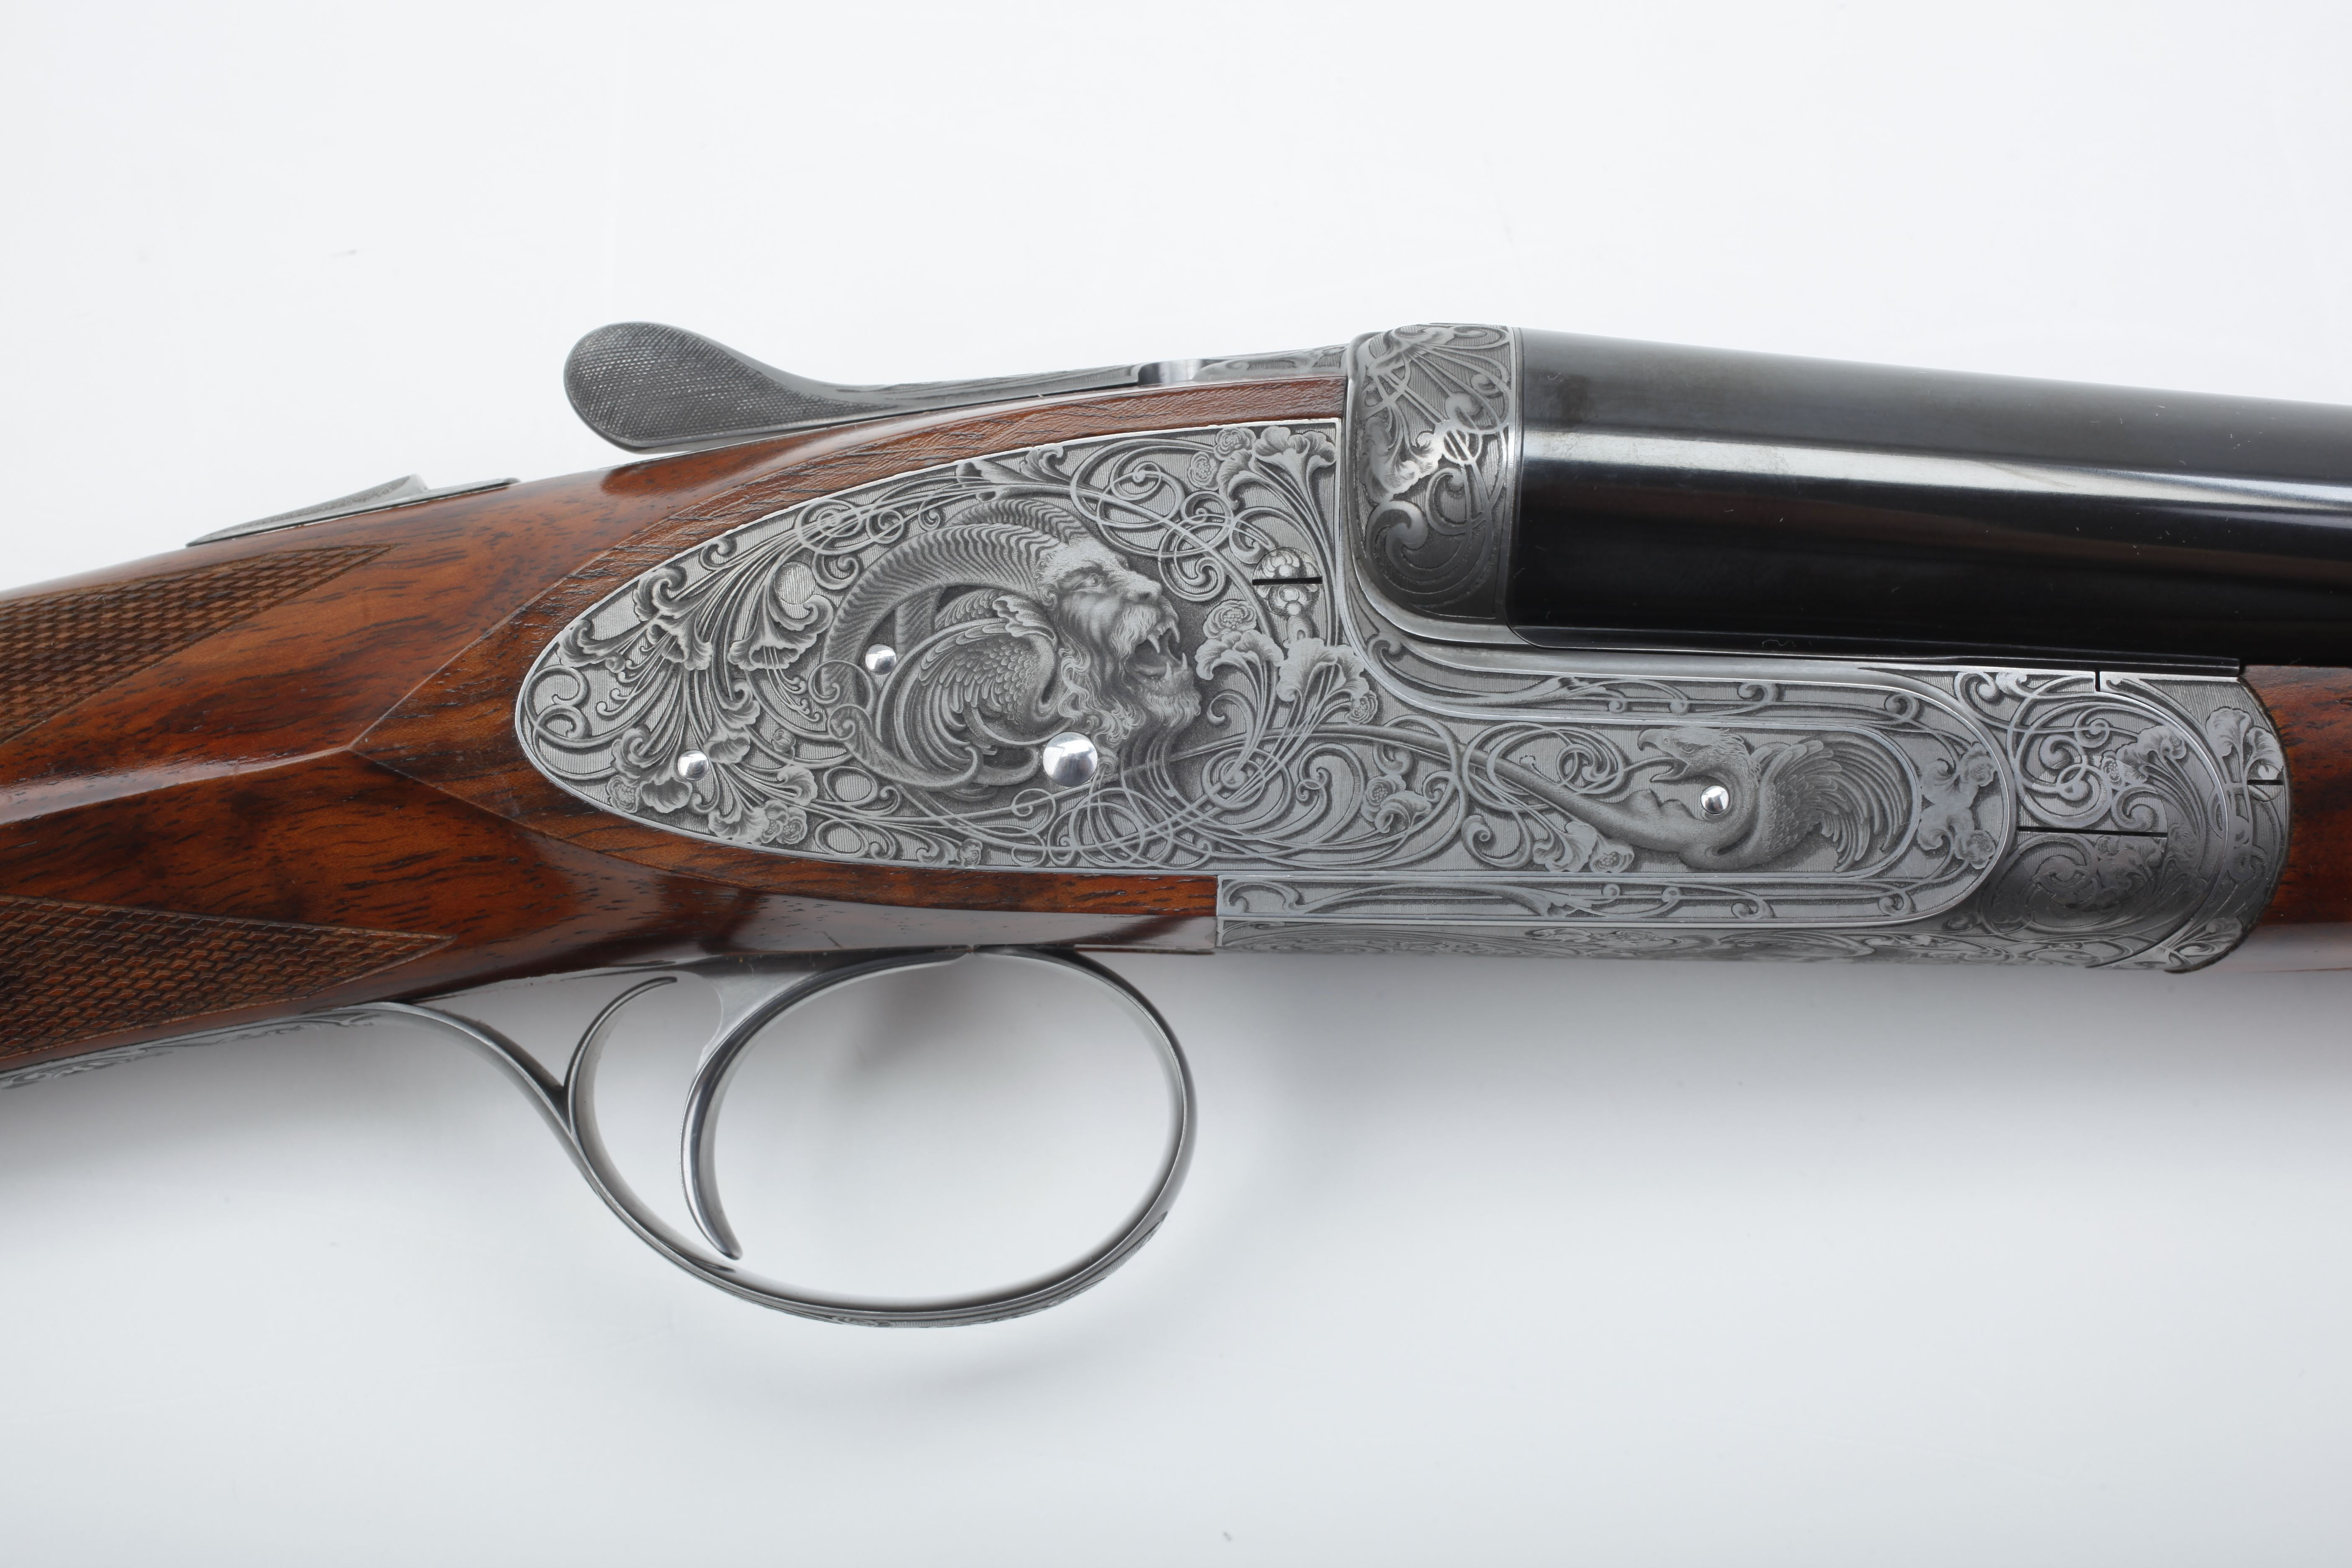 Rizzini Side-by-side Two Barrel Set Shotgun